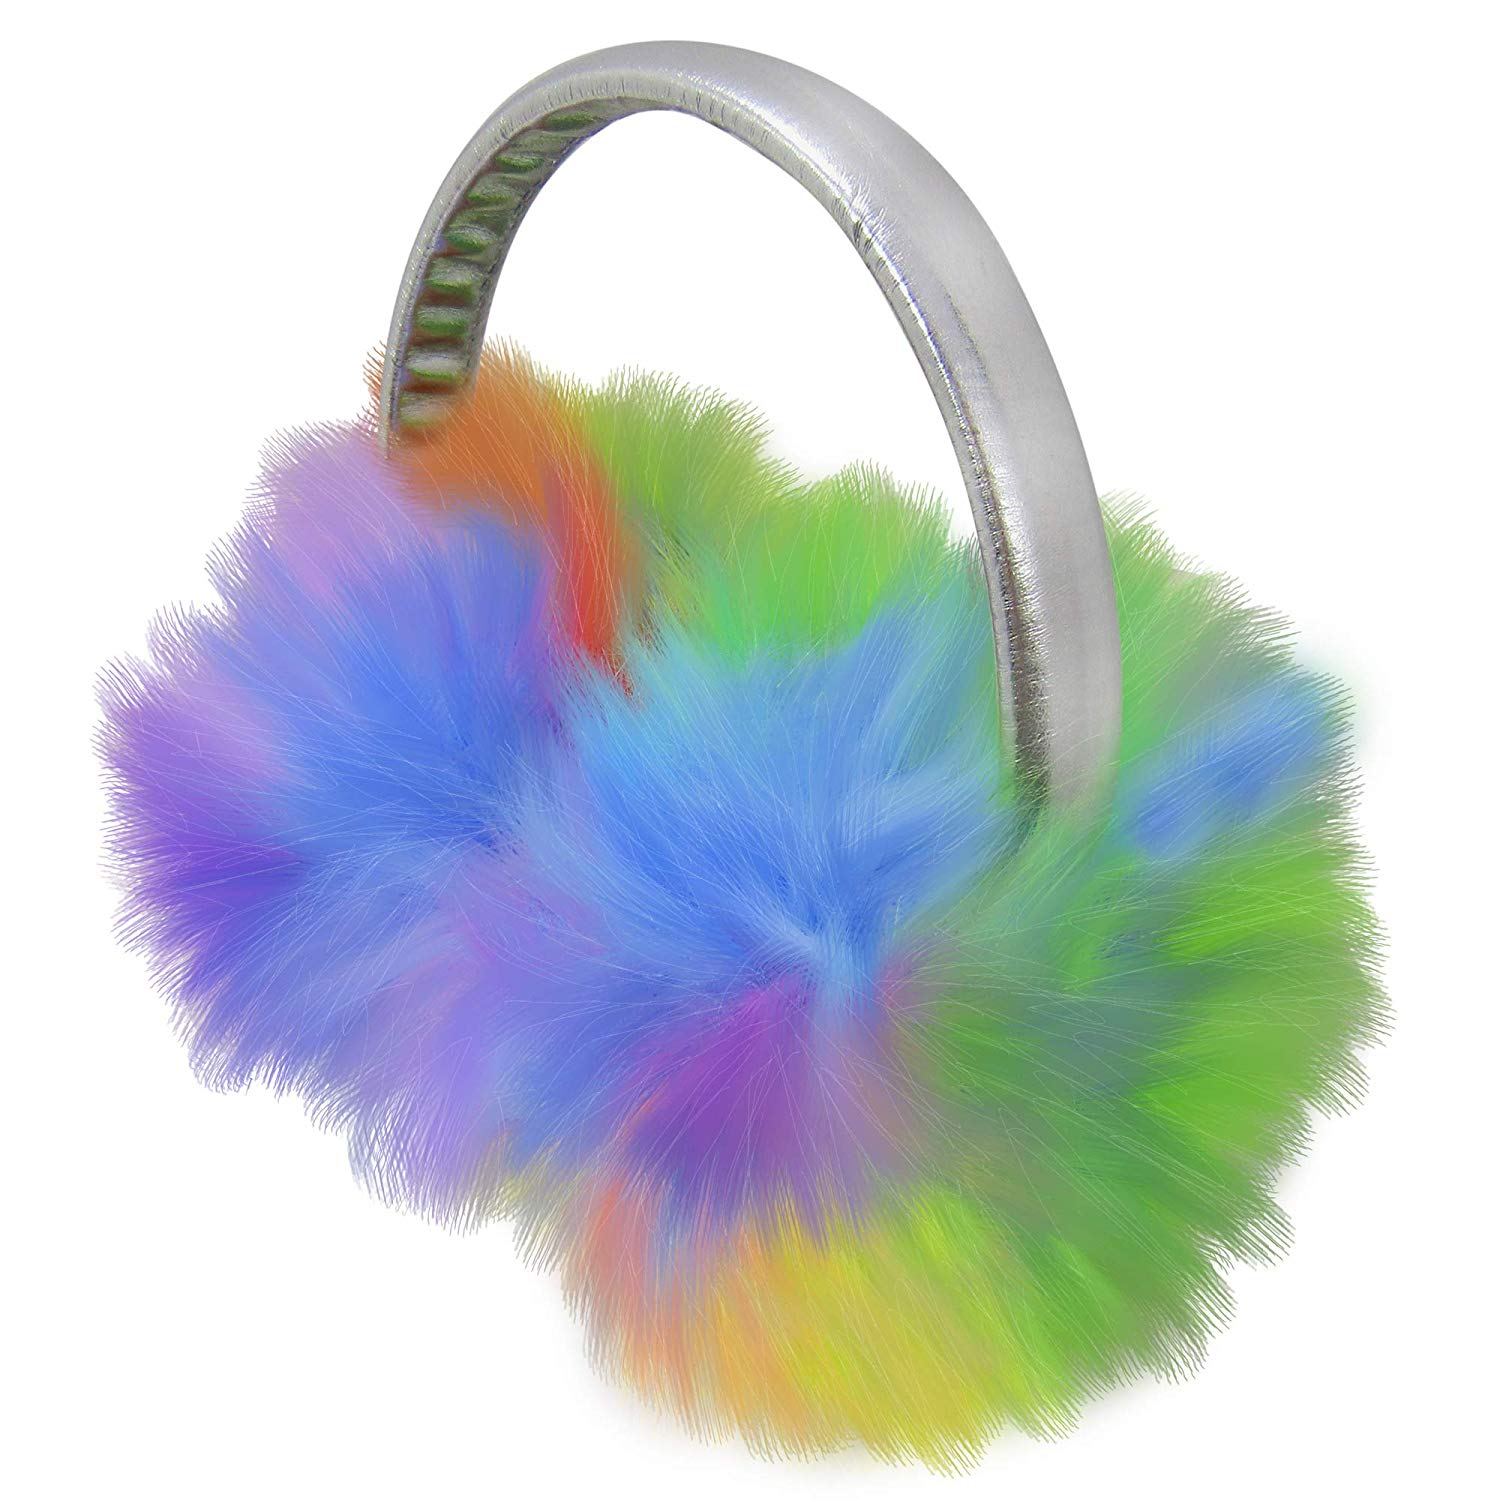 picture-of-rainbow-ear-muffs-photo